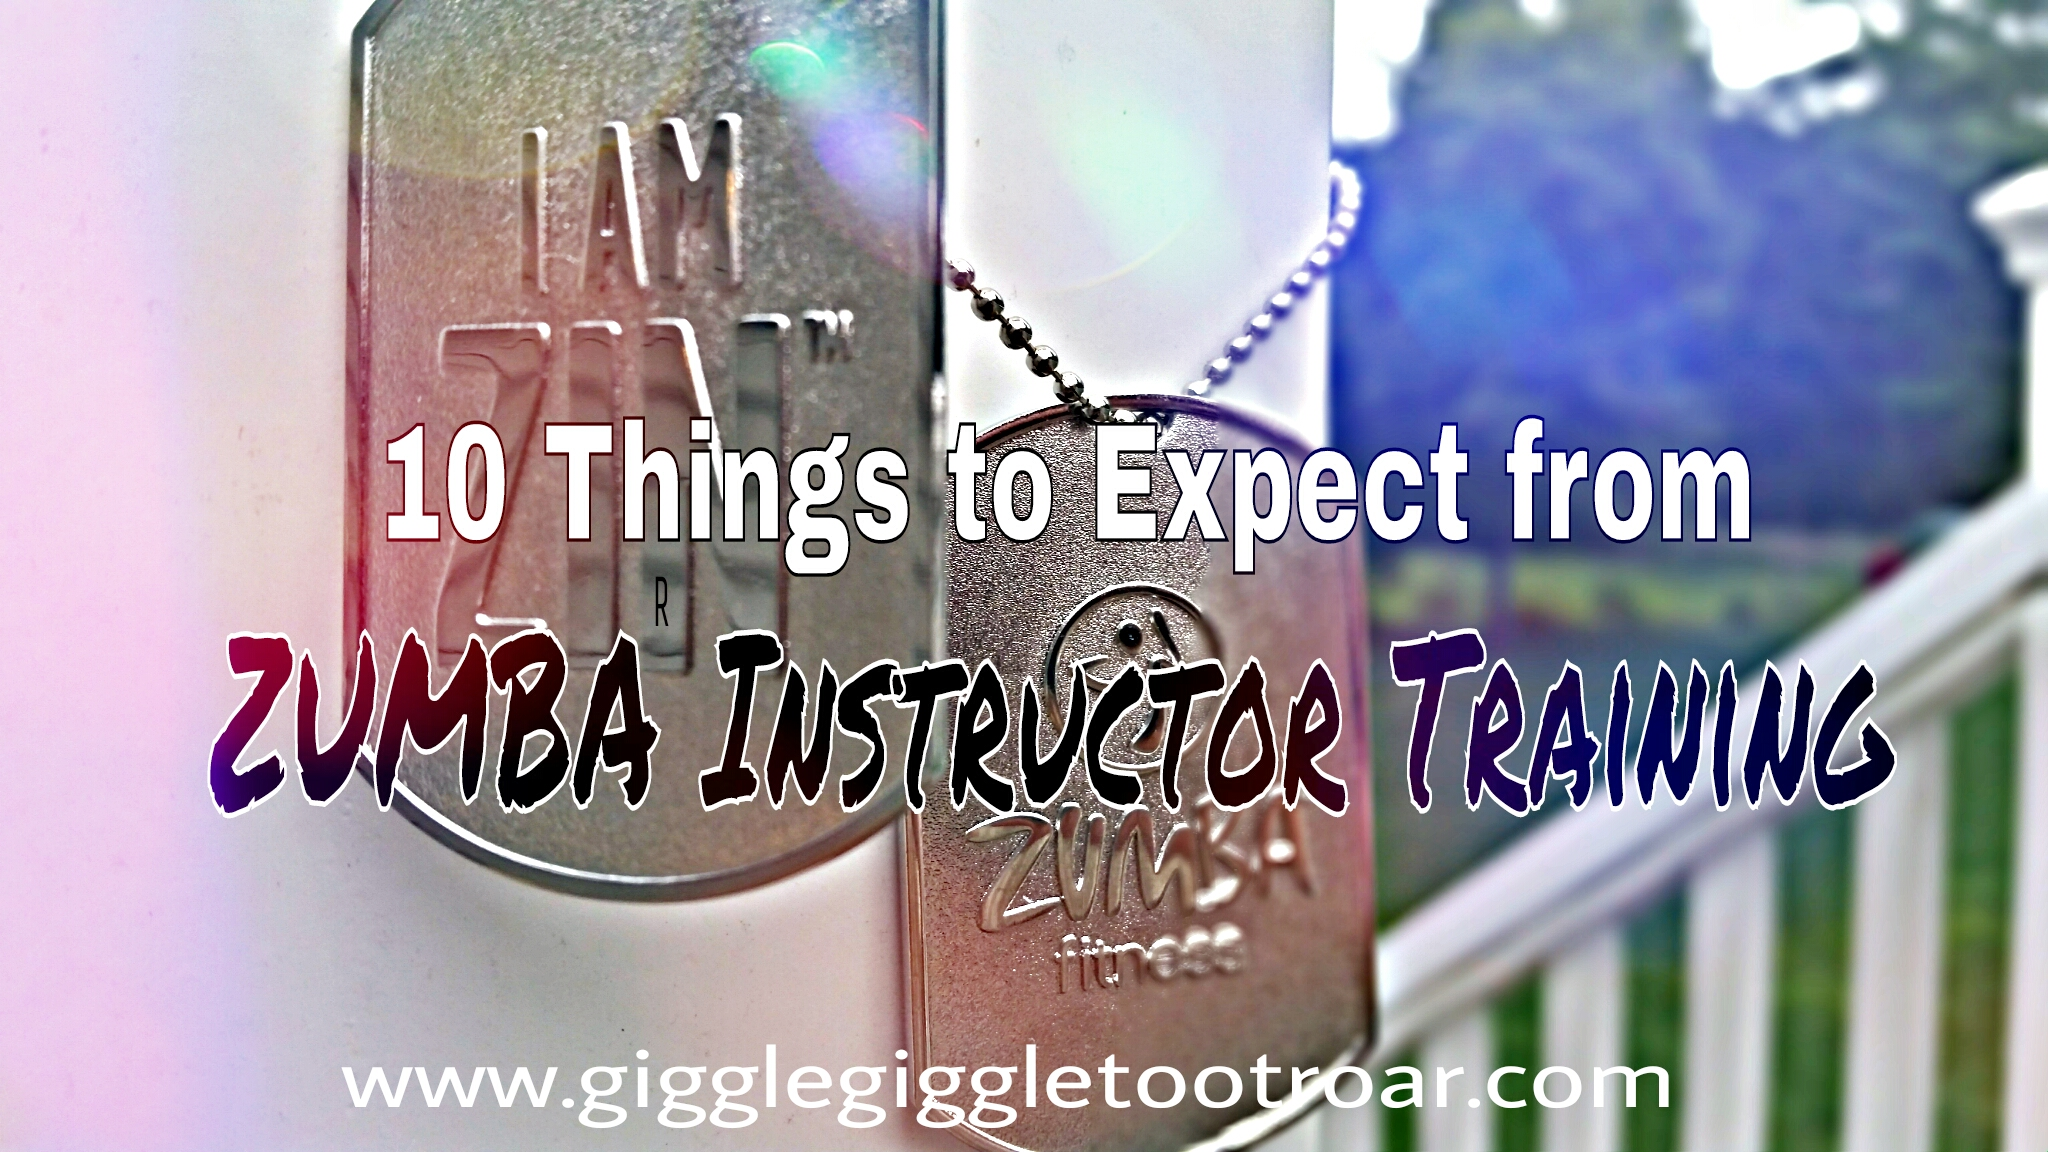 10 Things To Expect From Zumba Instructor Training Giggle Giggle